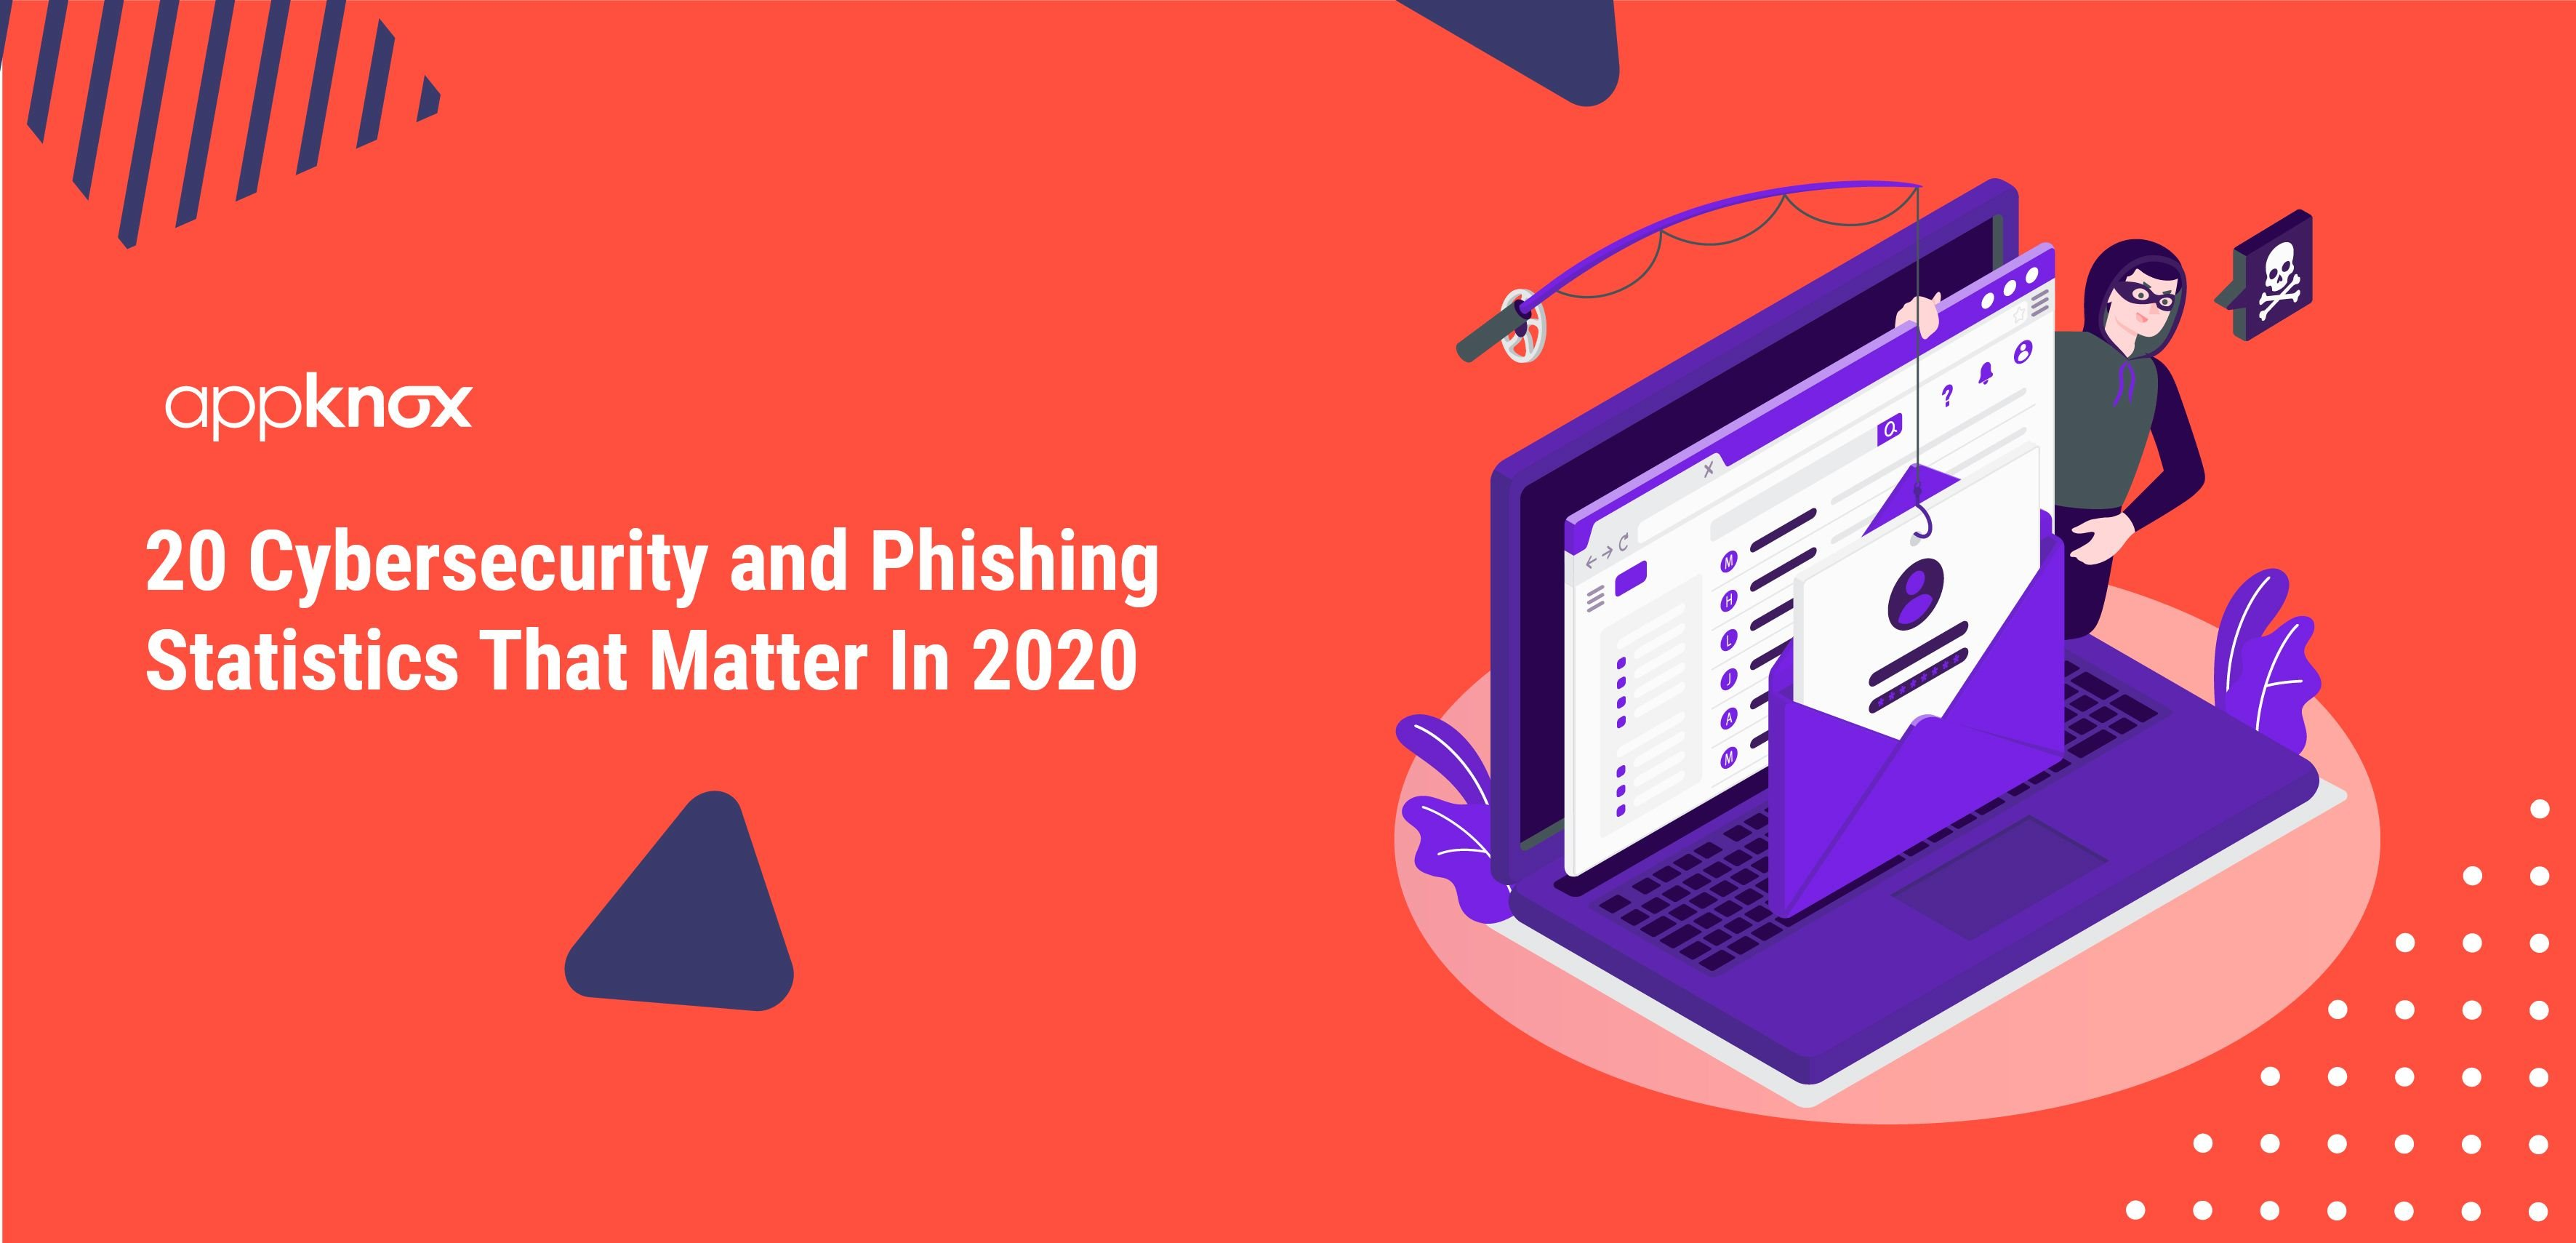 20 Cybersecurity and Phishing Statistics That Matter In 2020